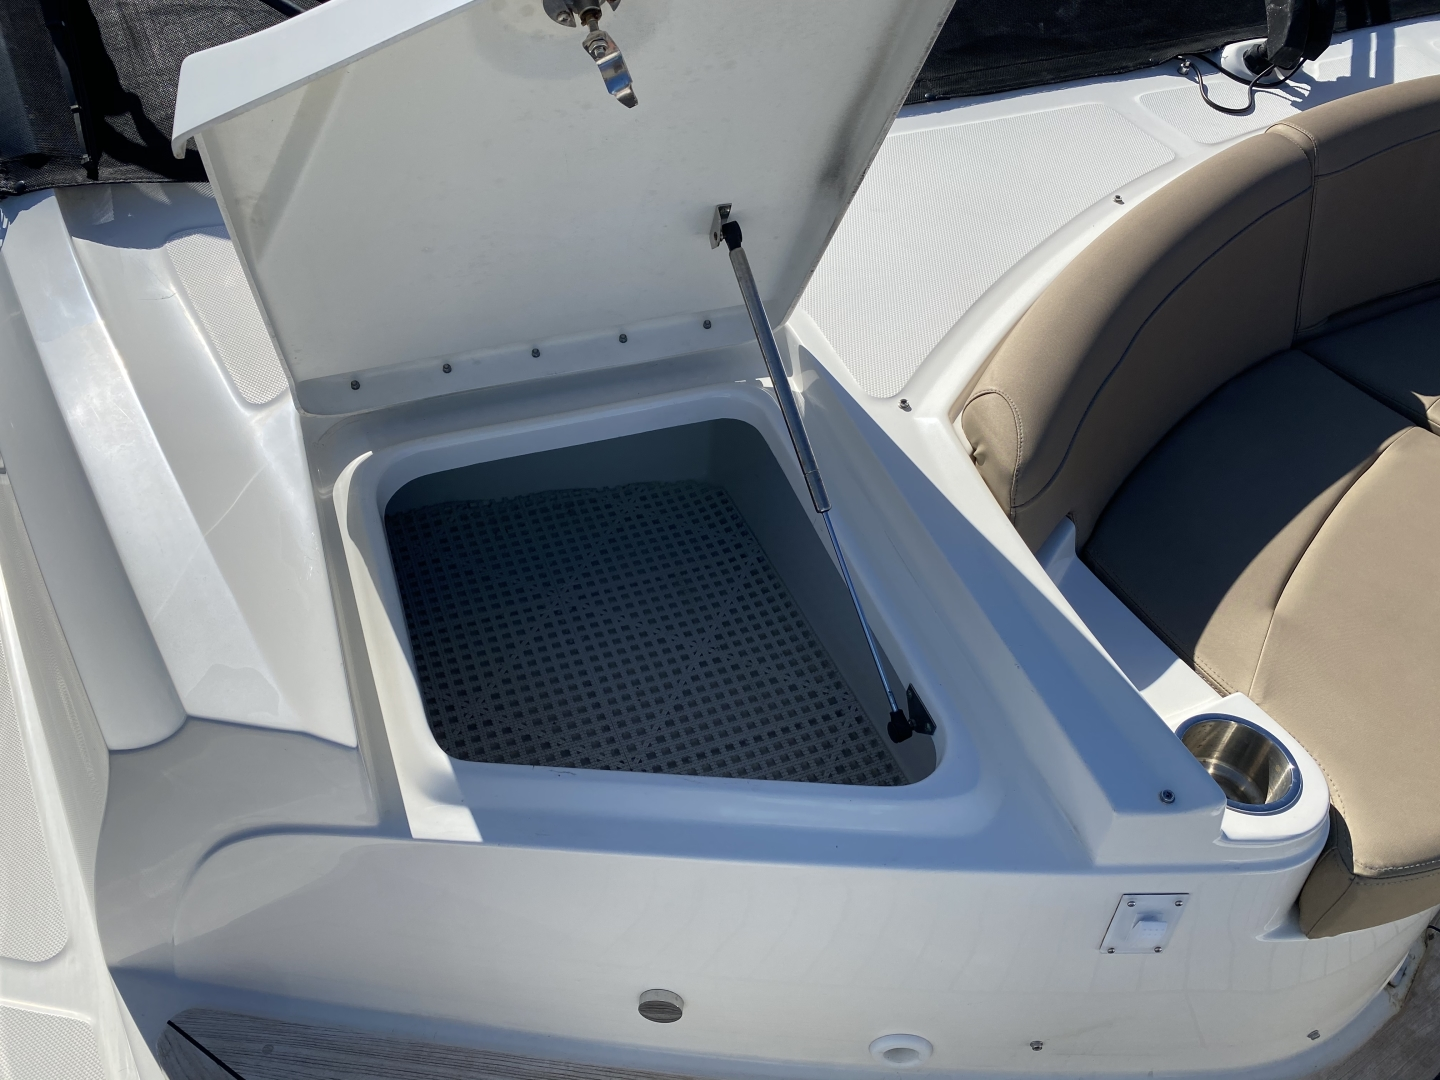 Sea Ray-L650 Express 2016-Cozy Fort Lauderdale-Florida-United States-2016 Sea Ray L650 Storage-1367789 | Thumbnail